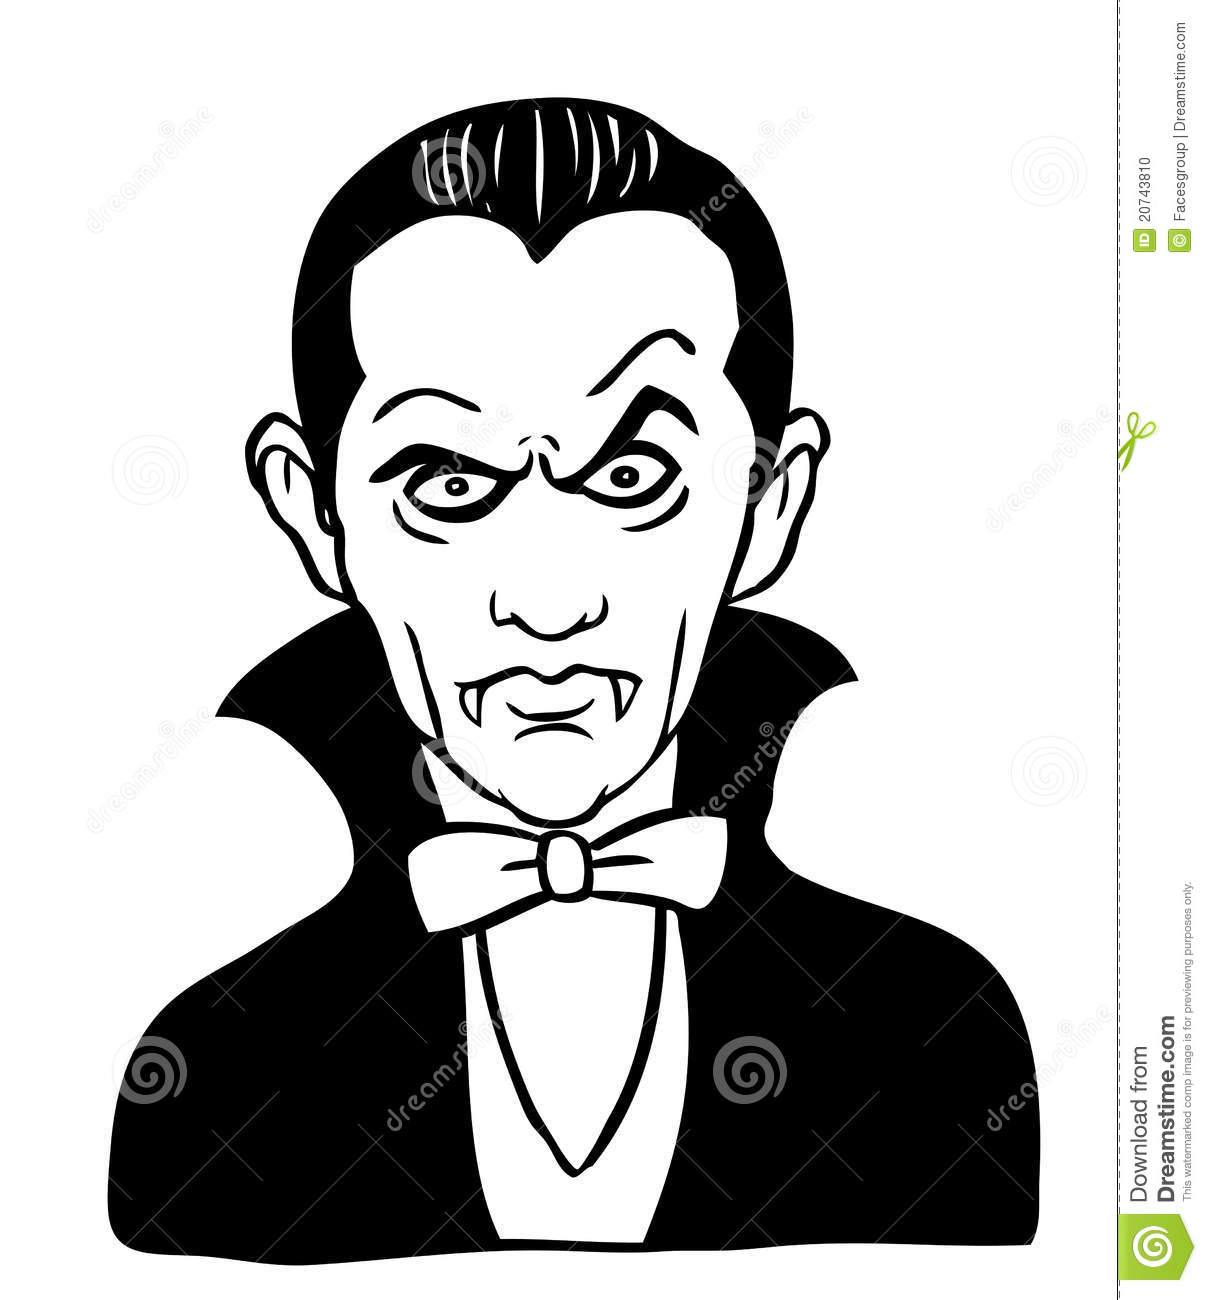 Cartoon drawing of Dracula stock vector. Illustration of clipart.